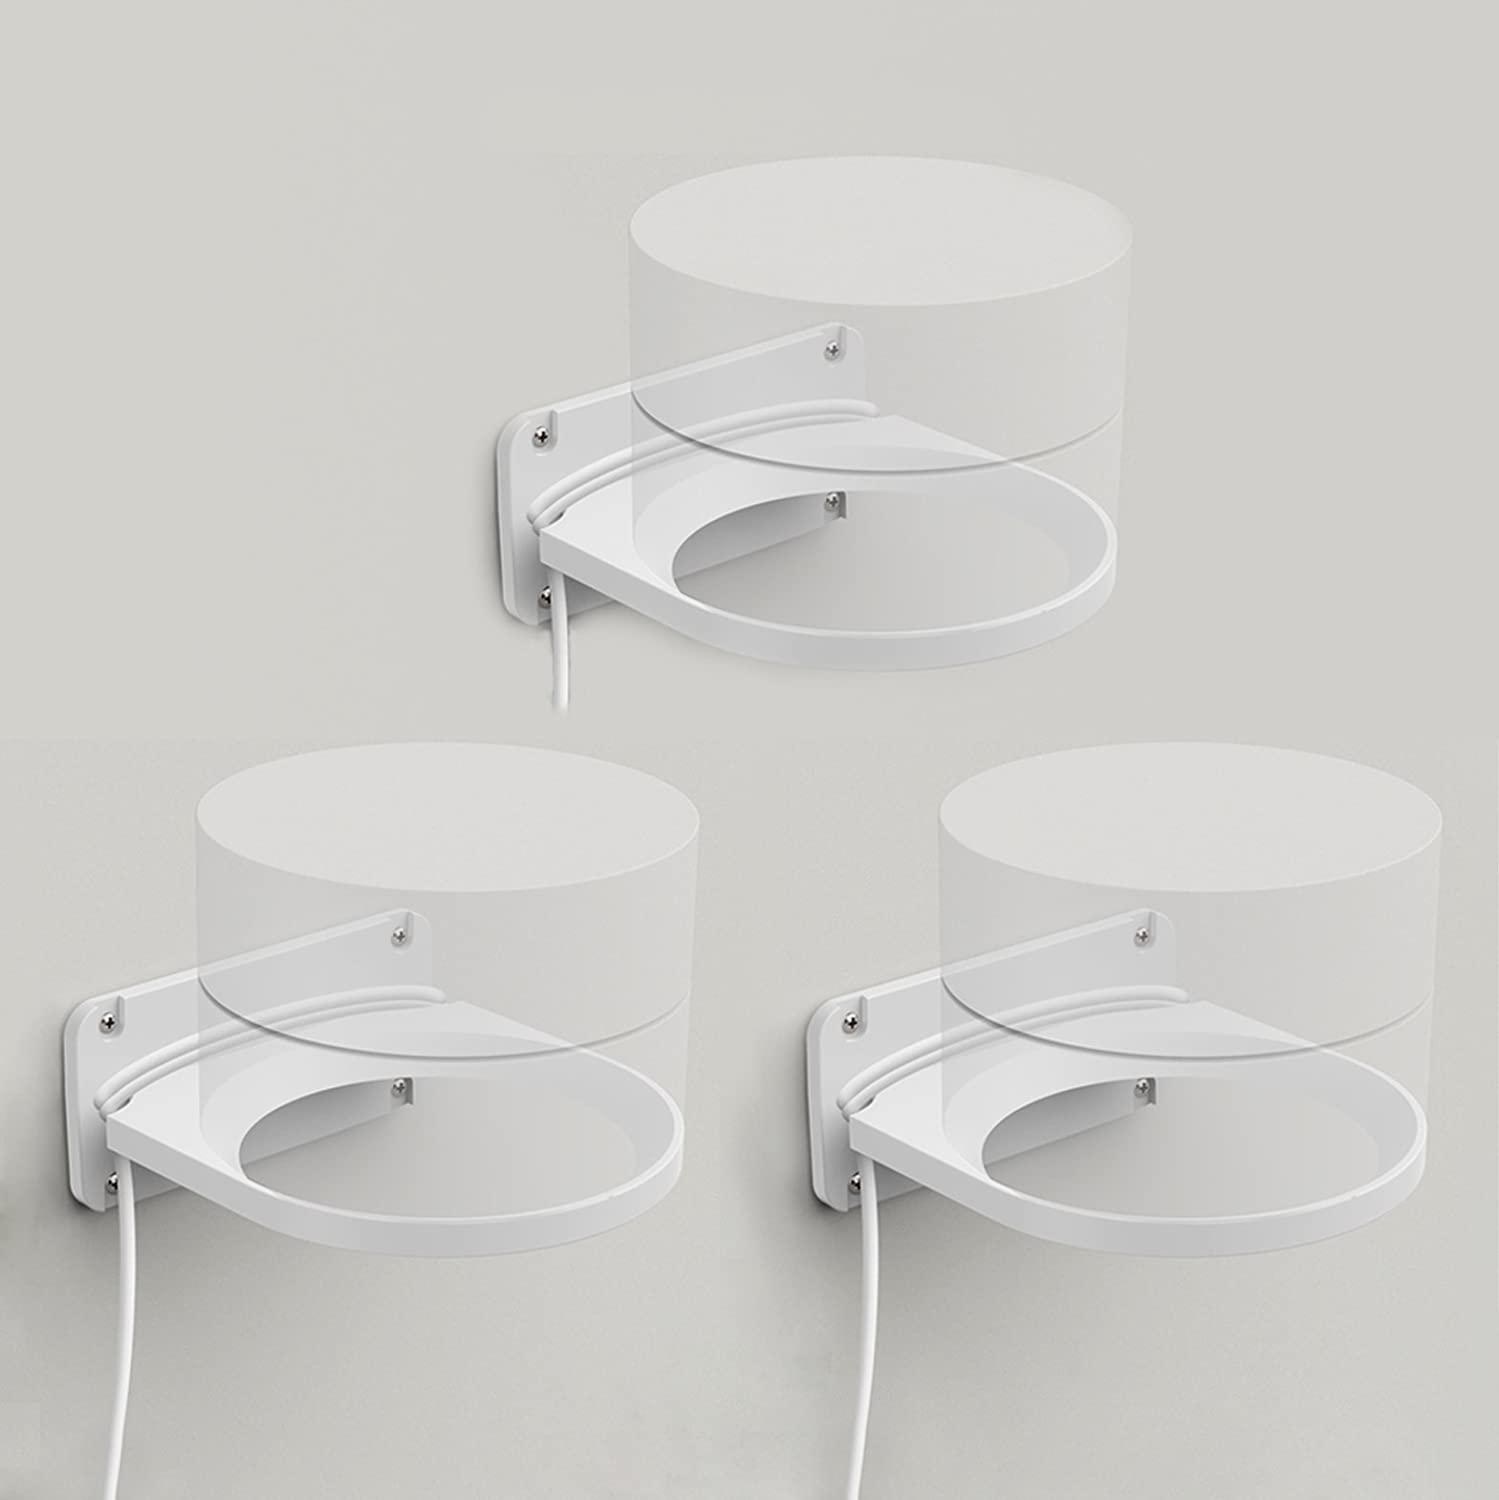 LykusSource Google WiFi Wall Mount Bracket, Signal as Good as Placed On The Table, Built-in Power Cord Organizer (3-Pack) LS-WM-G3